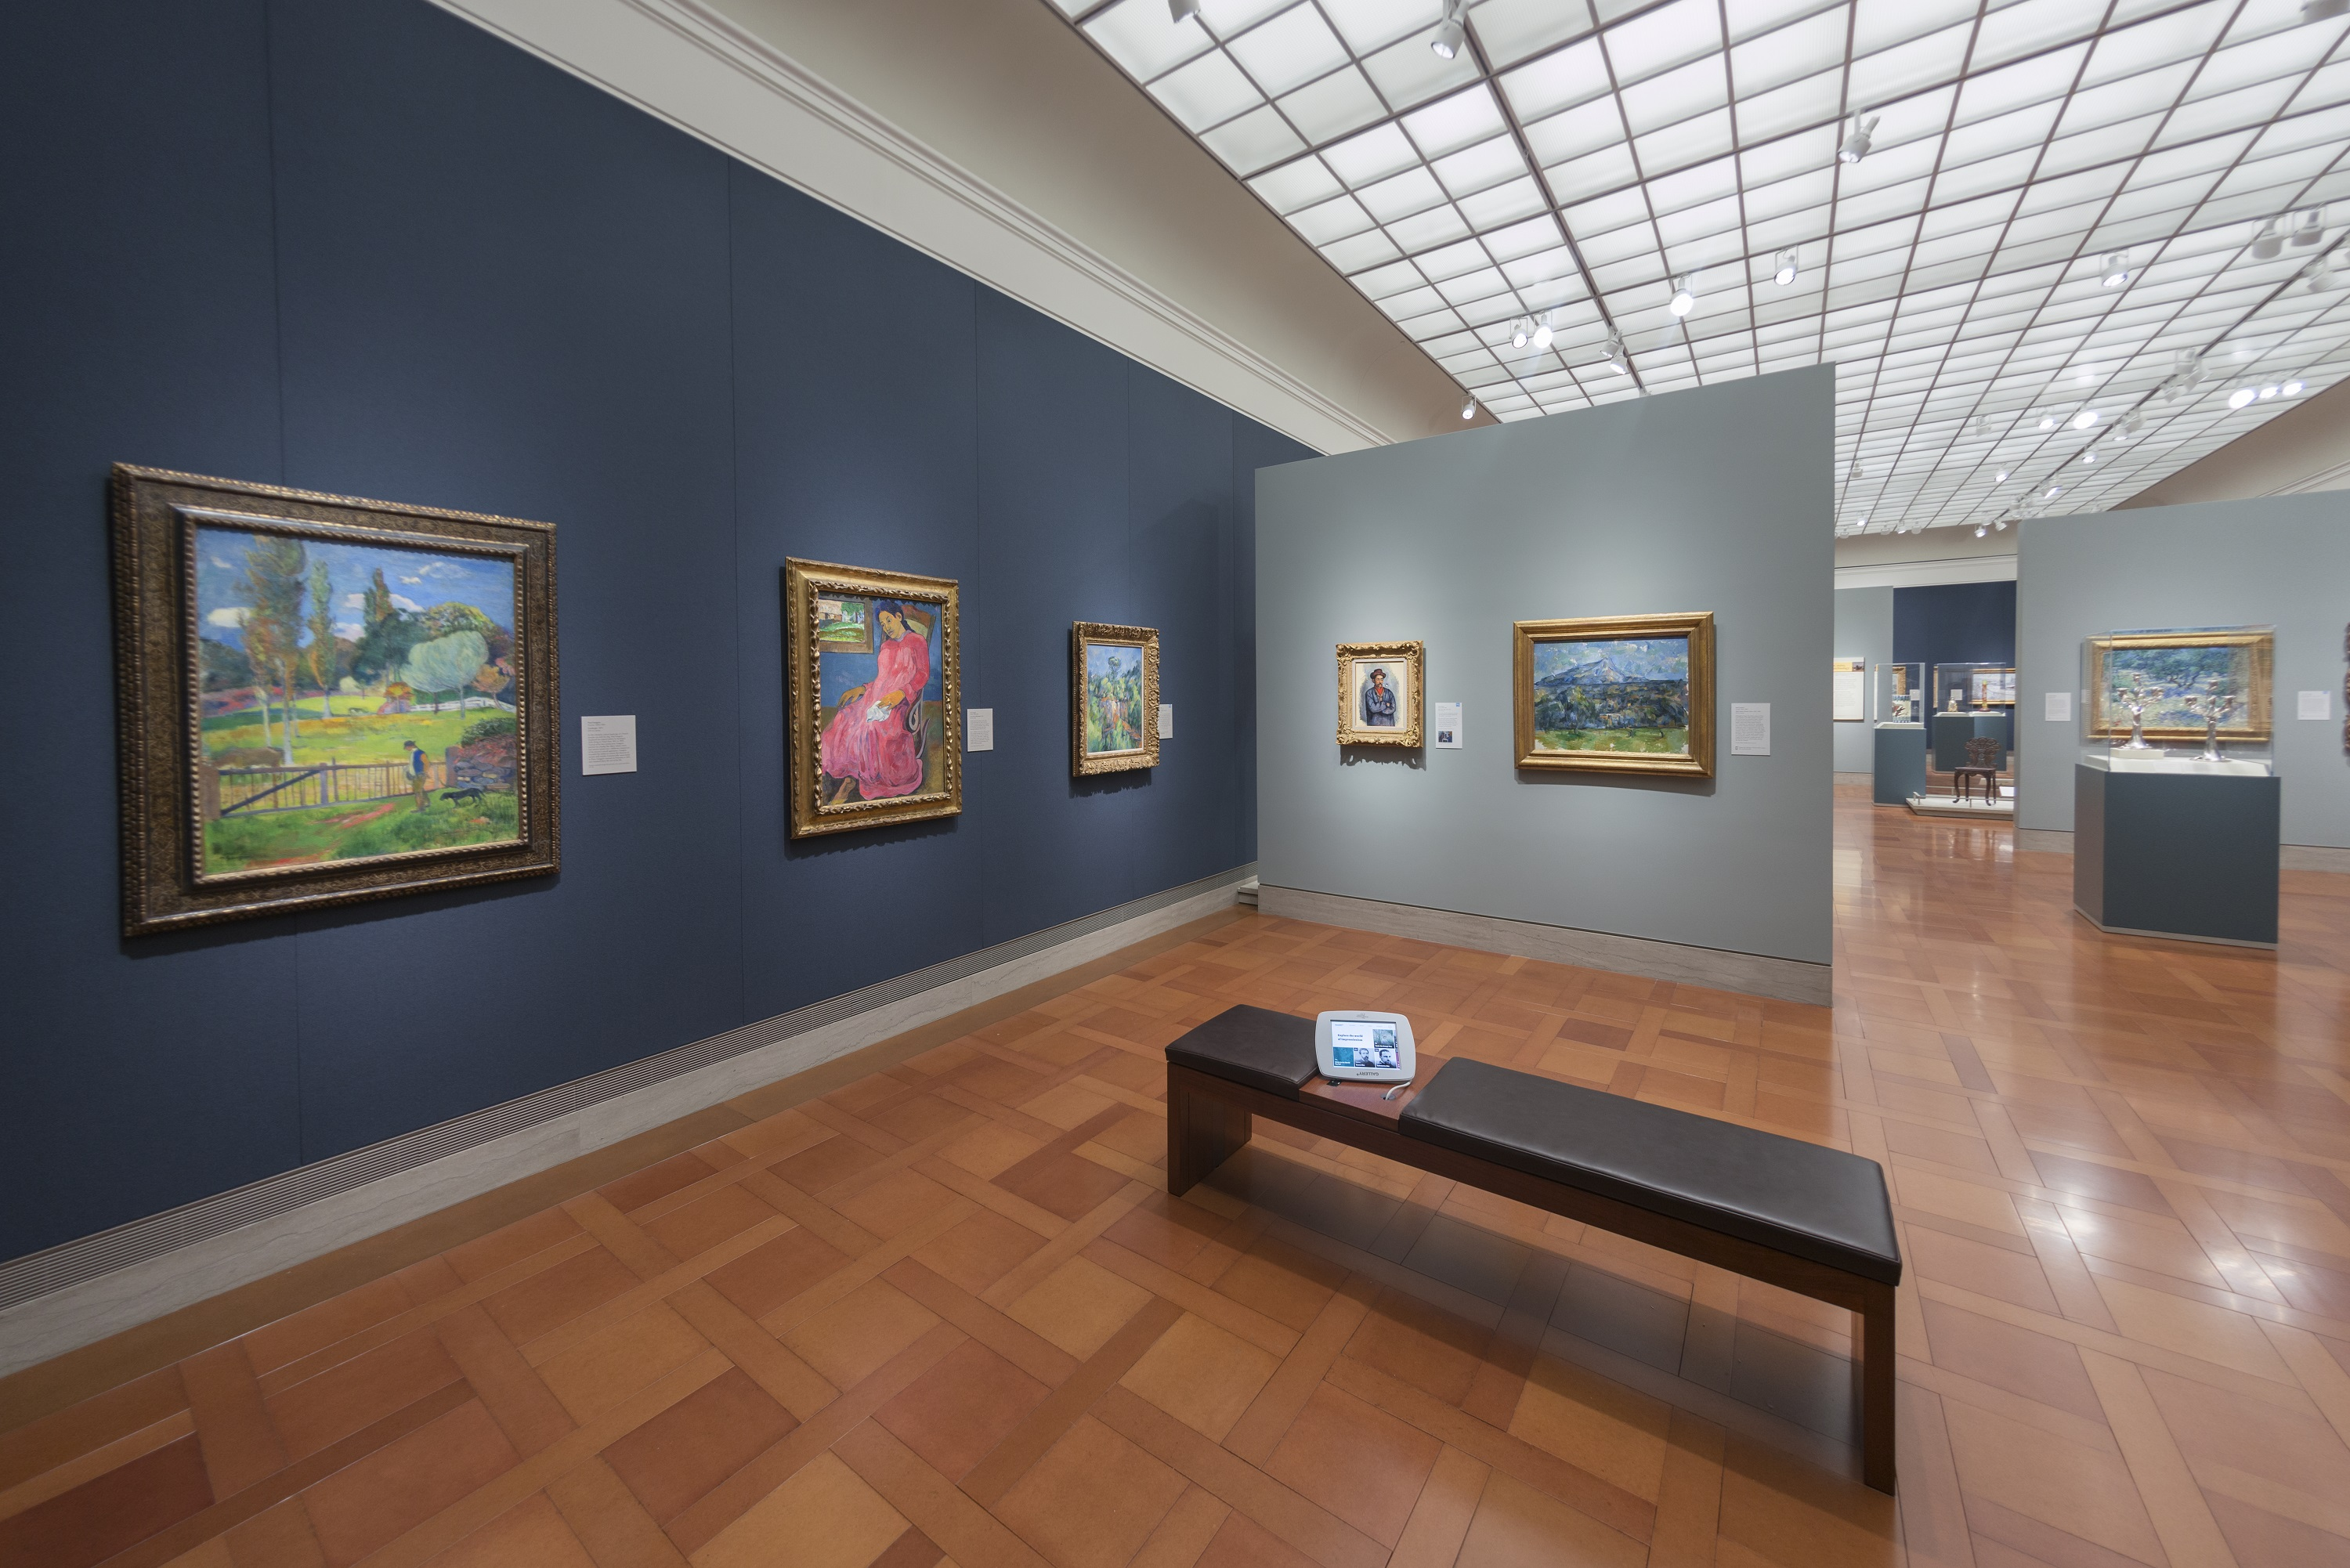 Nelson Atkins To Unveil Bloch Galleries Of European Art In